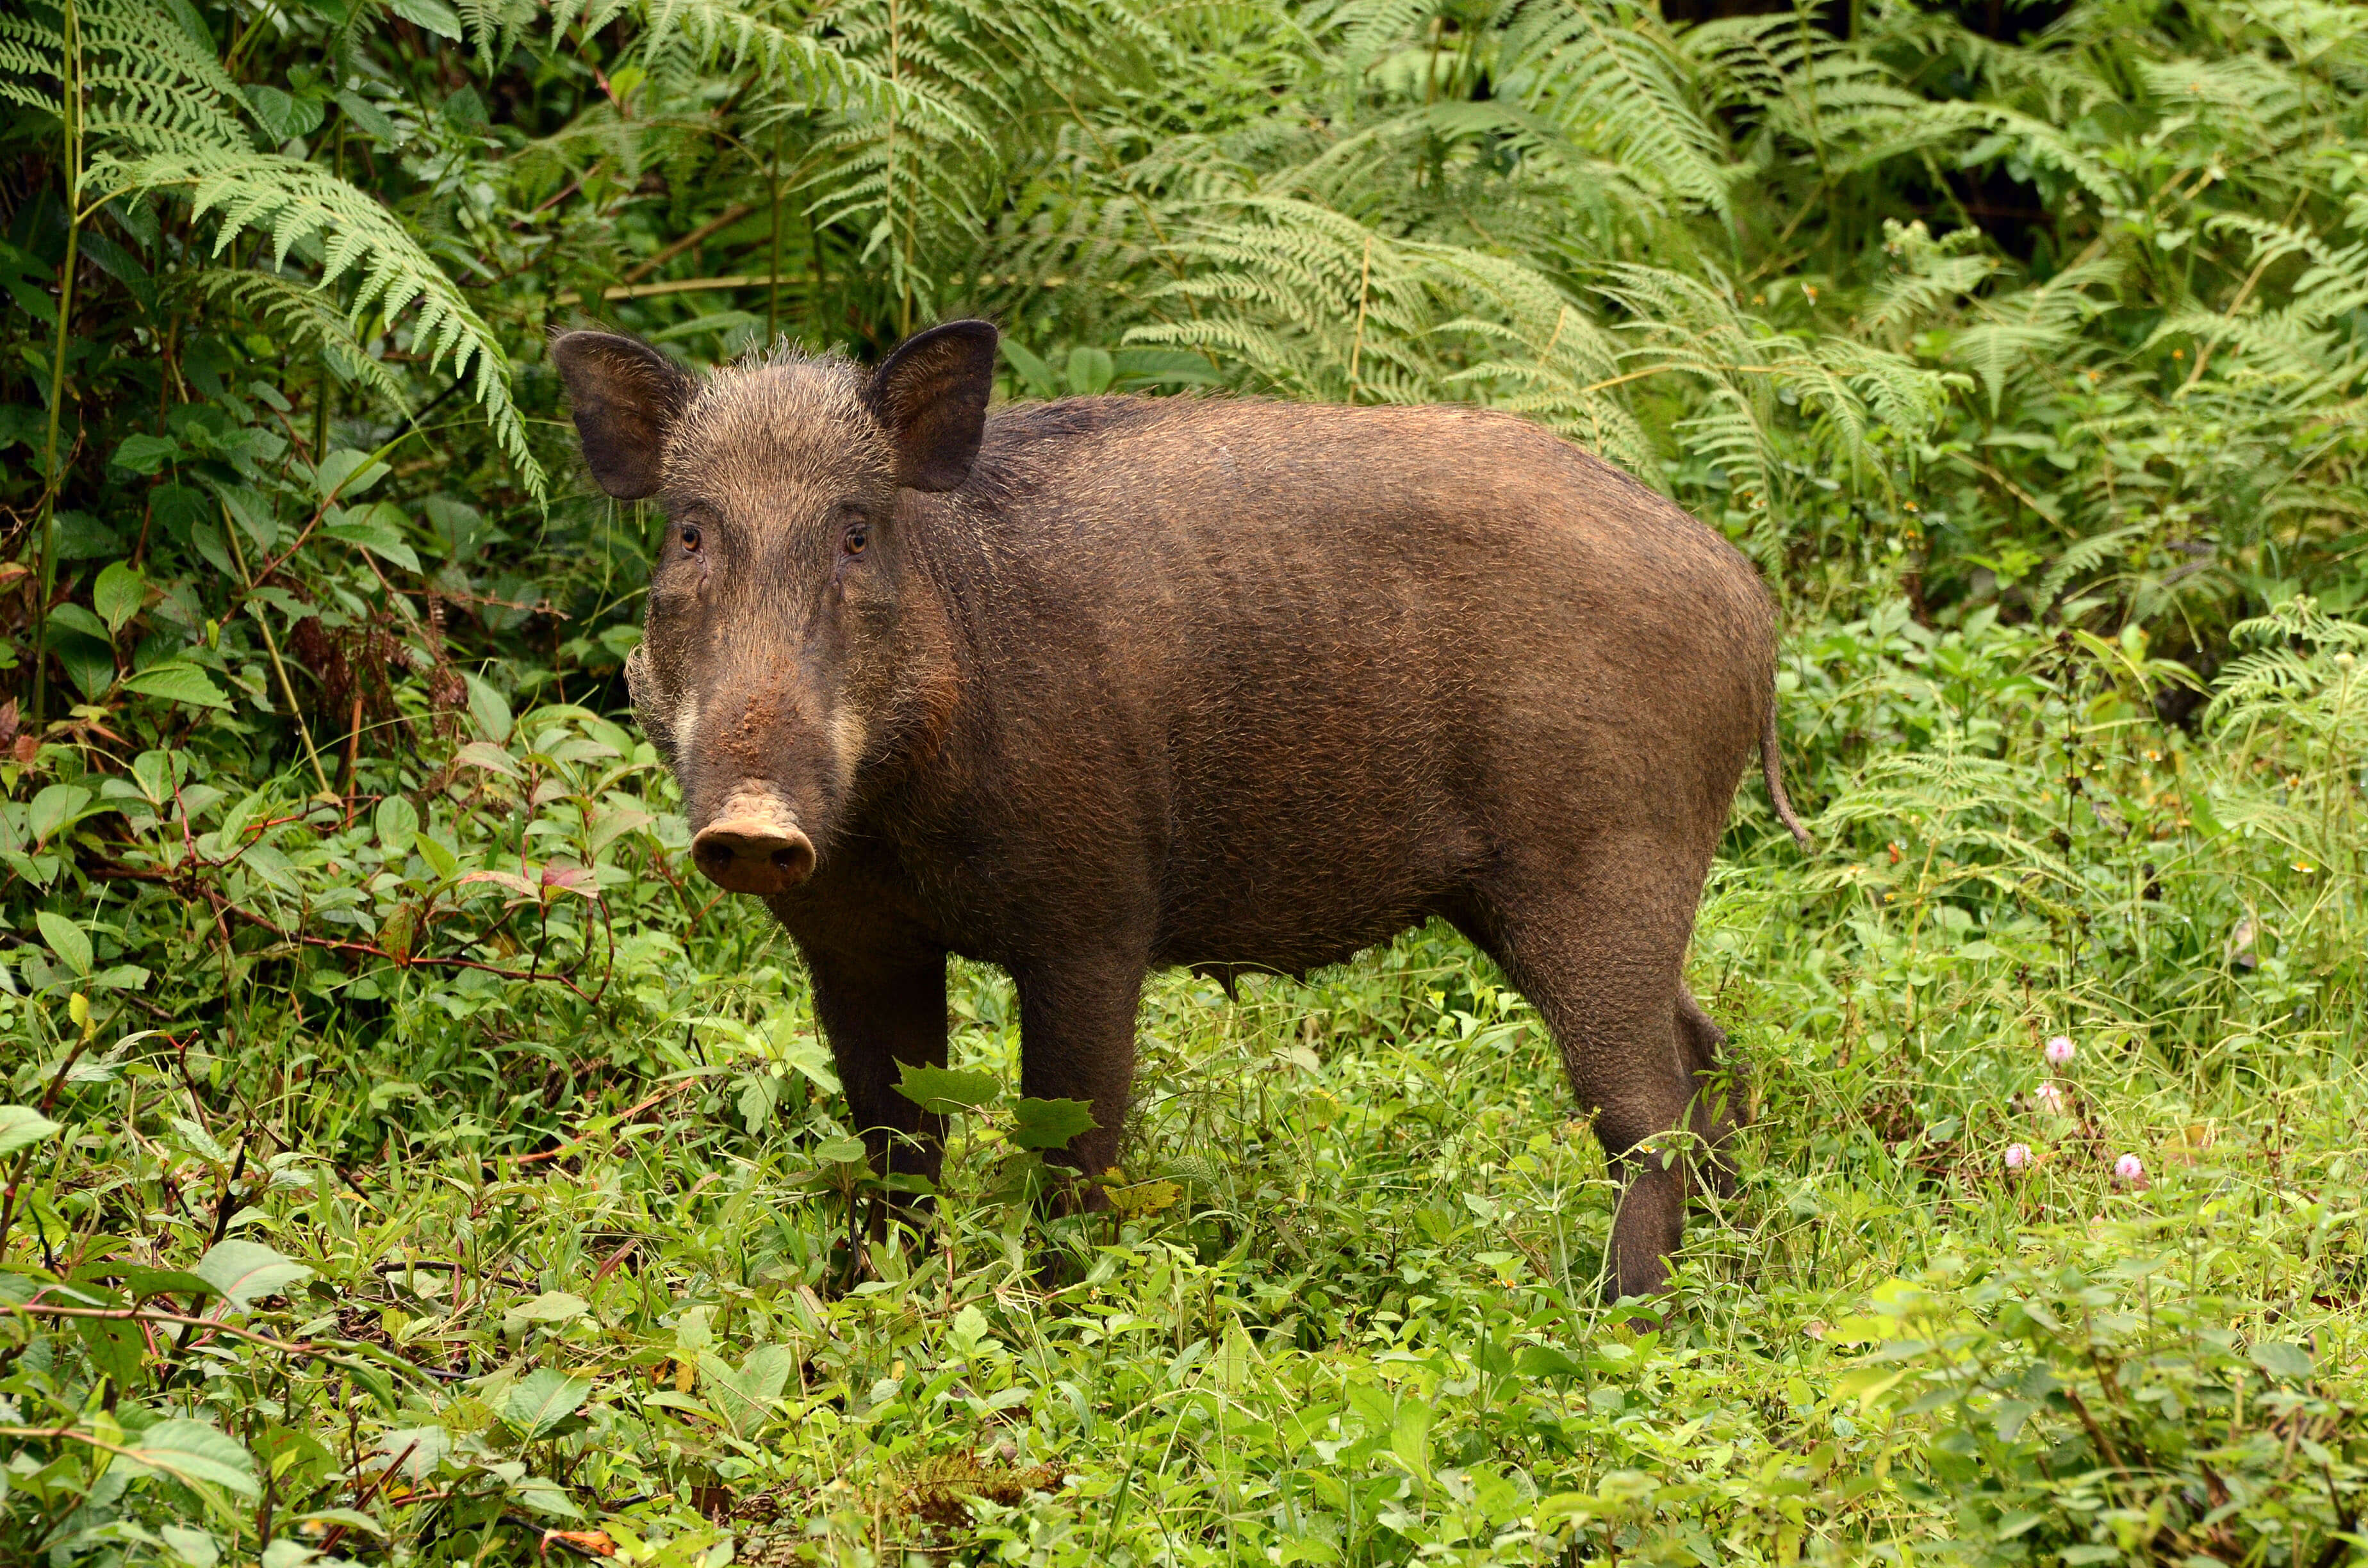 Go to Are you a wild pig?